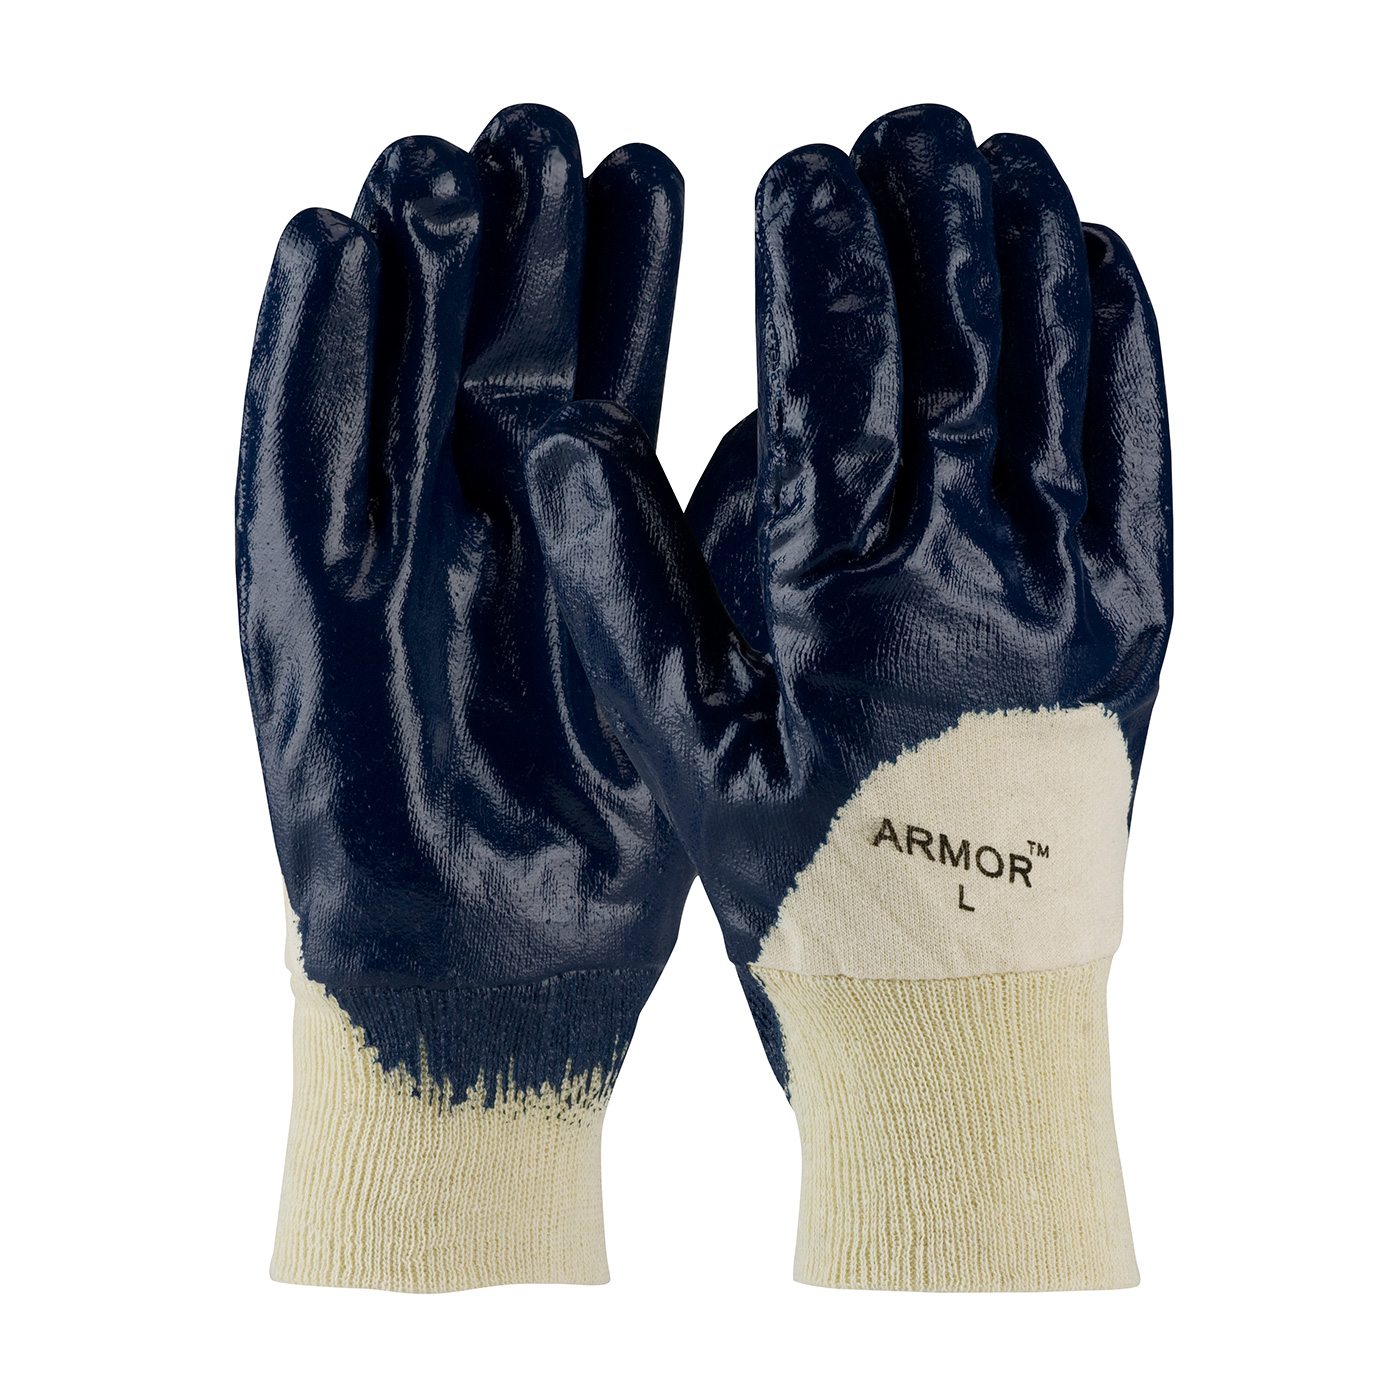 56-3151 PIP® ArmorGrip® Jersey Lined Nitrile Dipped Glove with Smooth Grip Texture and Knit Cuff